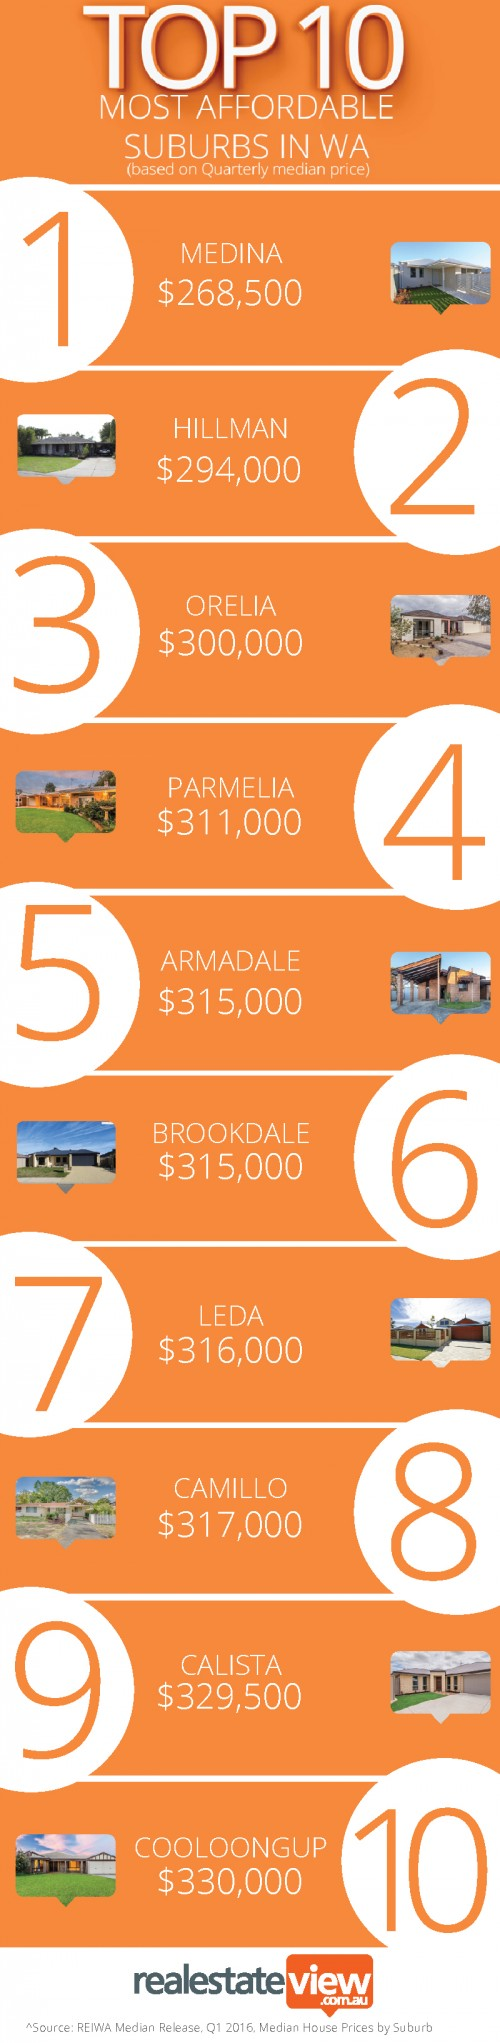 Top10-most-AffordableWA